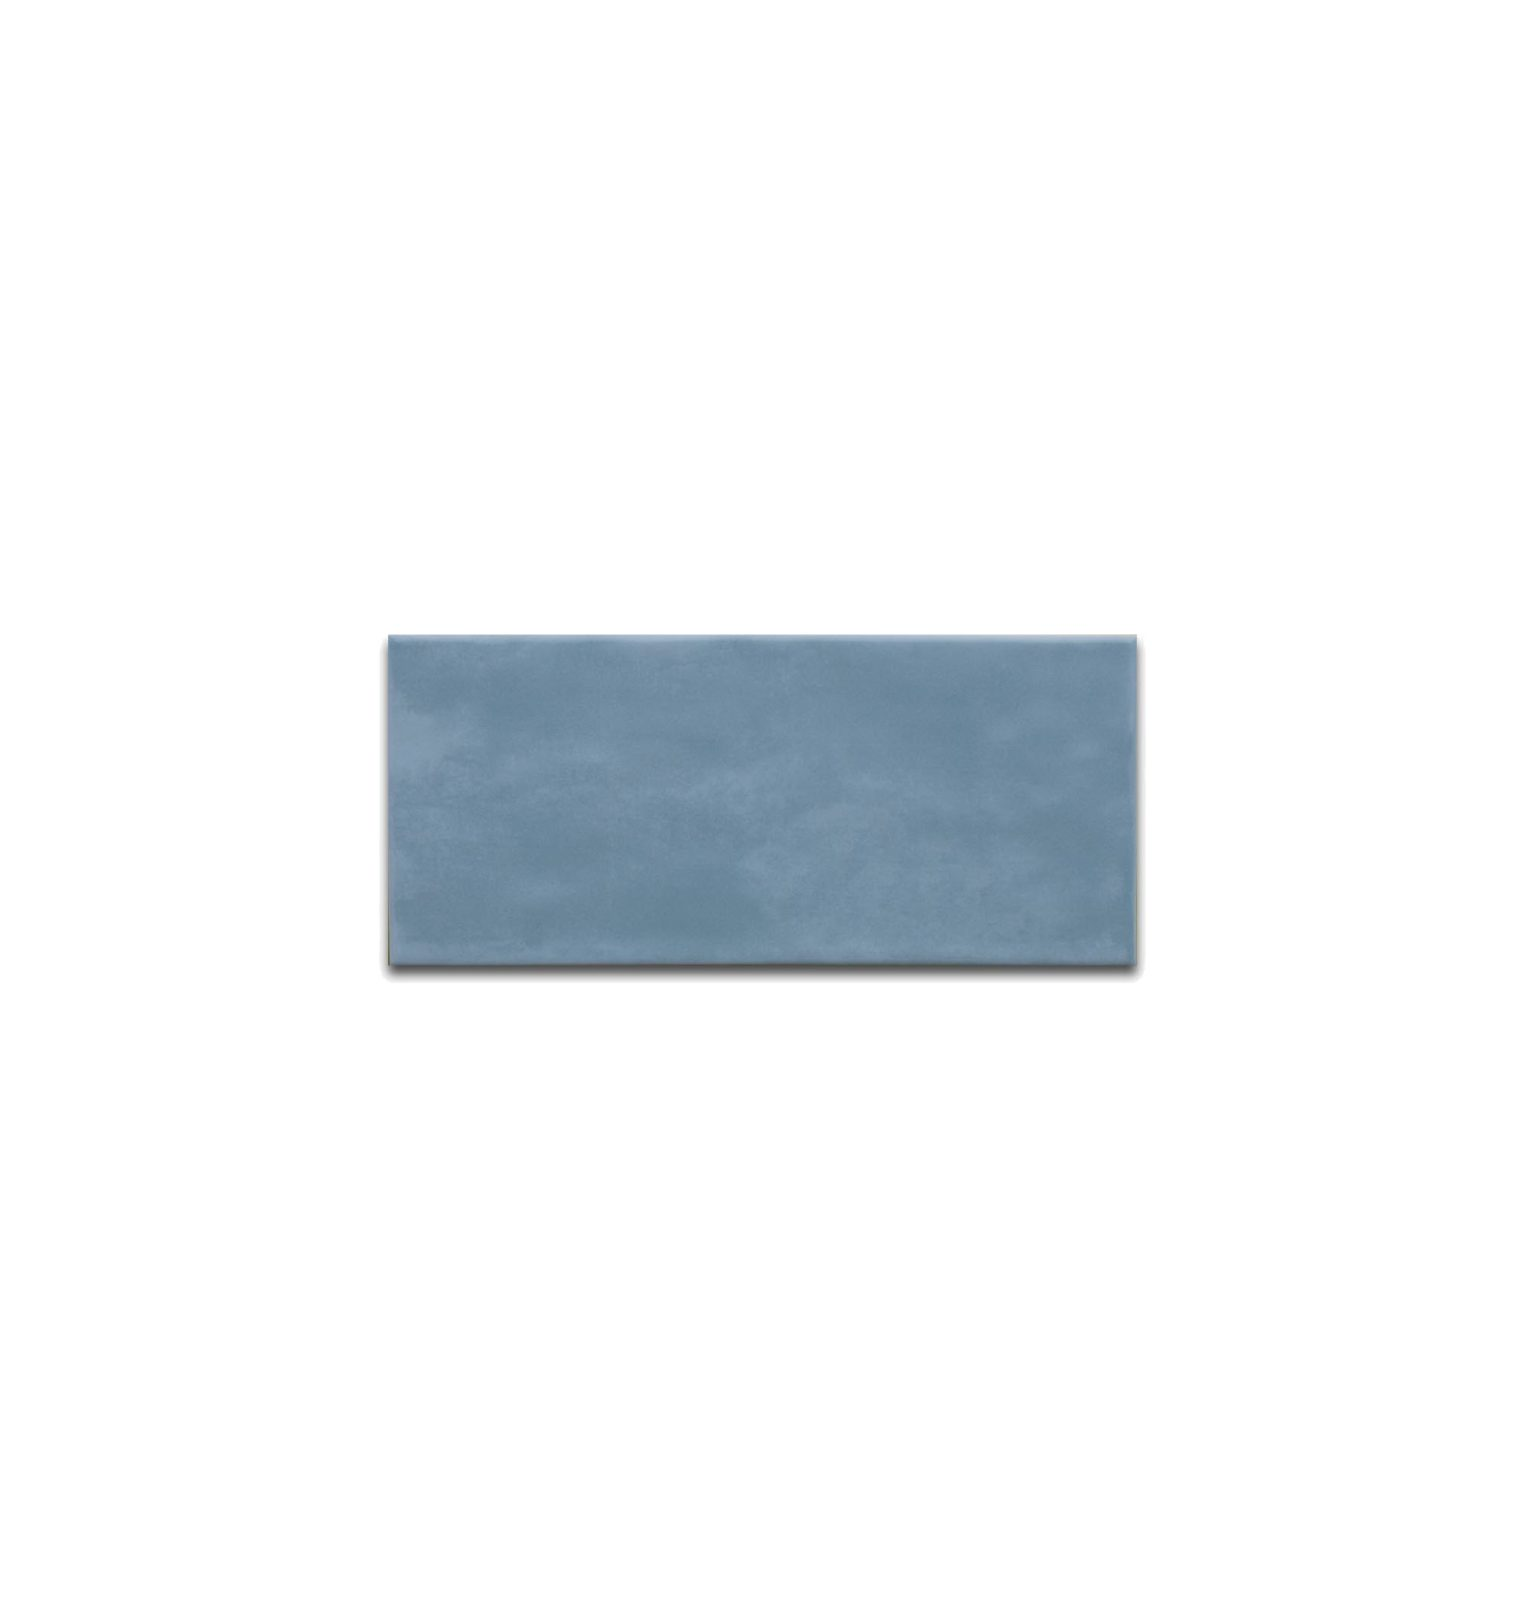 Excellent 1 Inch Ceramic Tile Tiny 2 X 4 Ceramic Tile Square 2X4 Ceiling Tile 4X4 Tile Backsplash Youthful 8 X 8 Ceramic Tile YellowAcoustical Tiles Ceiling Roca Maiolica Aqua Ceramic Wall Tile 4\